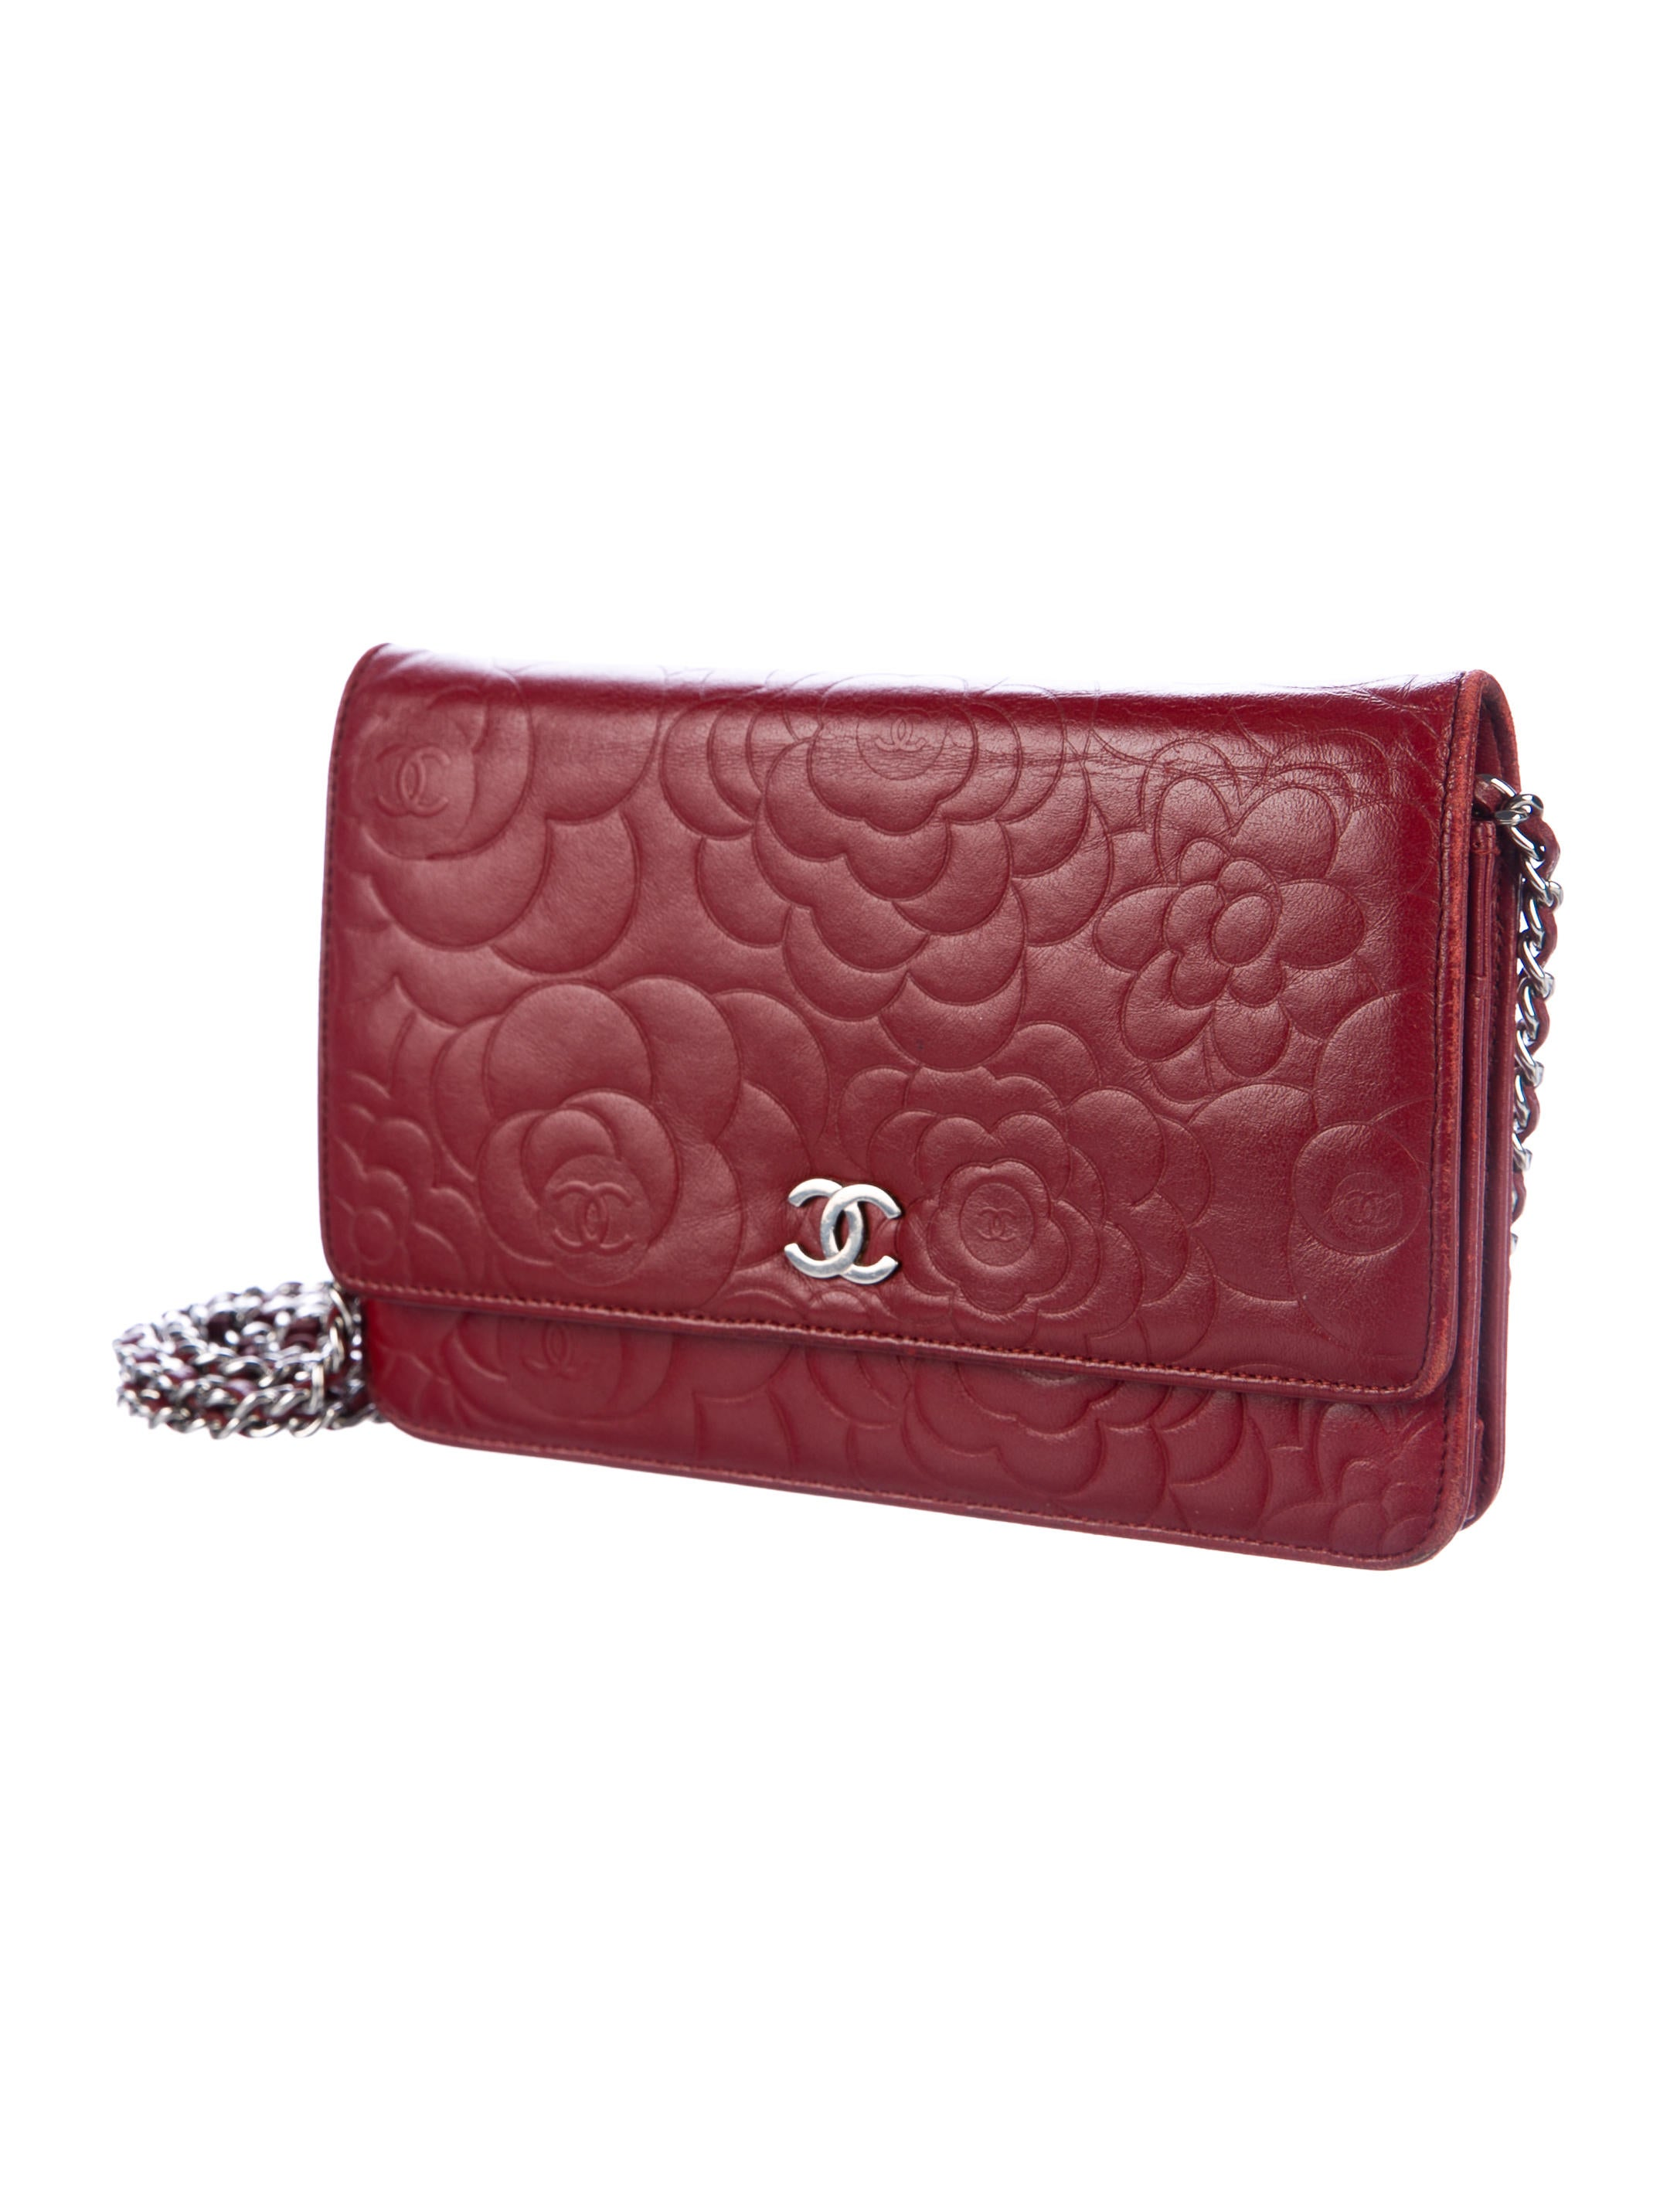 ea3dfaf19778 Chanel Camellia Wallet On Chain | Stanford Center for Opportunity ...